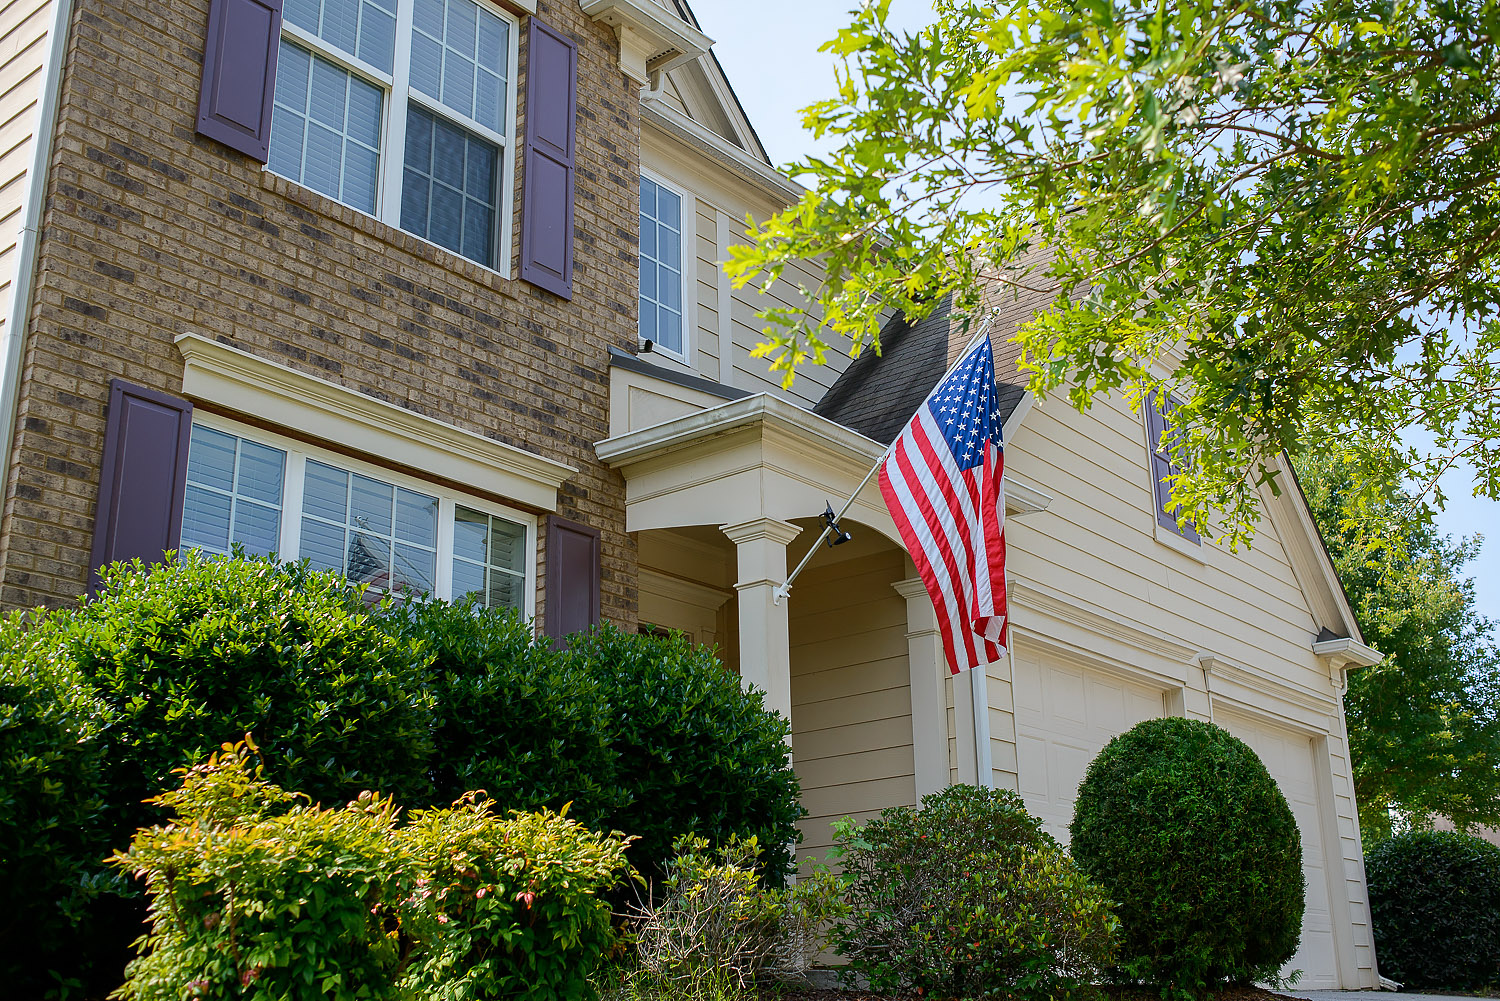 home security podcast, home exterior with American flag